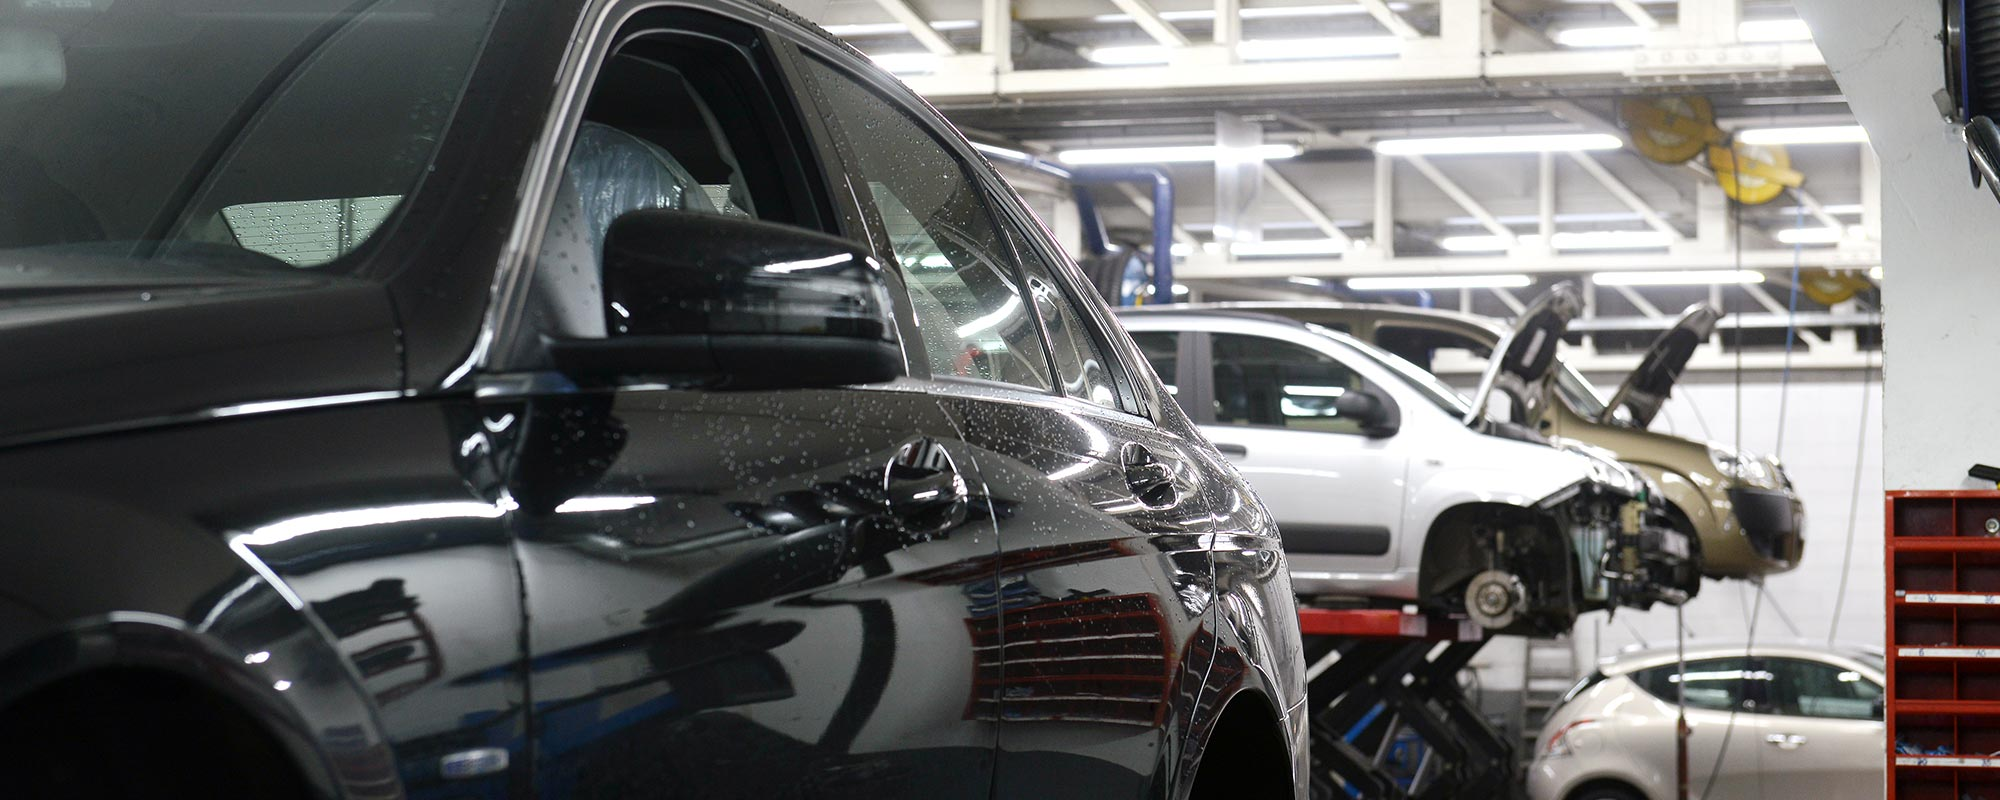 Automobile being serviced at Dean's Automotive Service Center in Anchorage